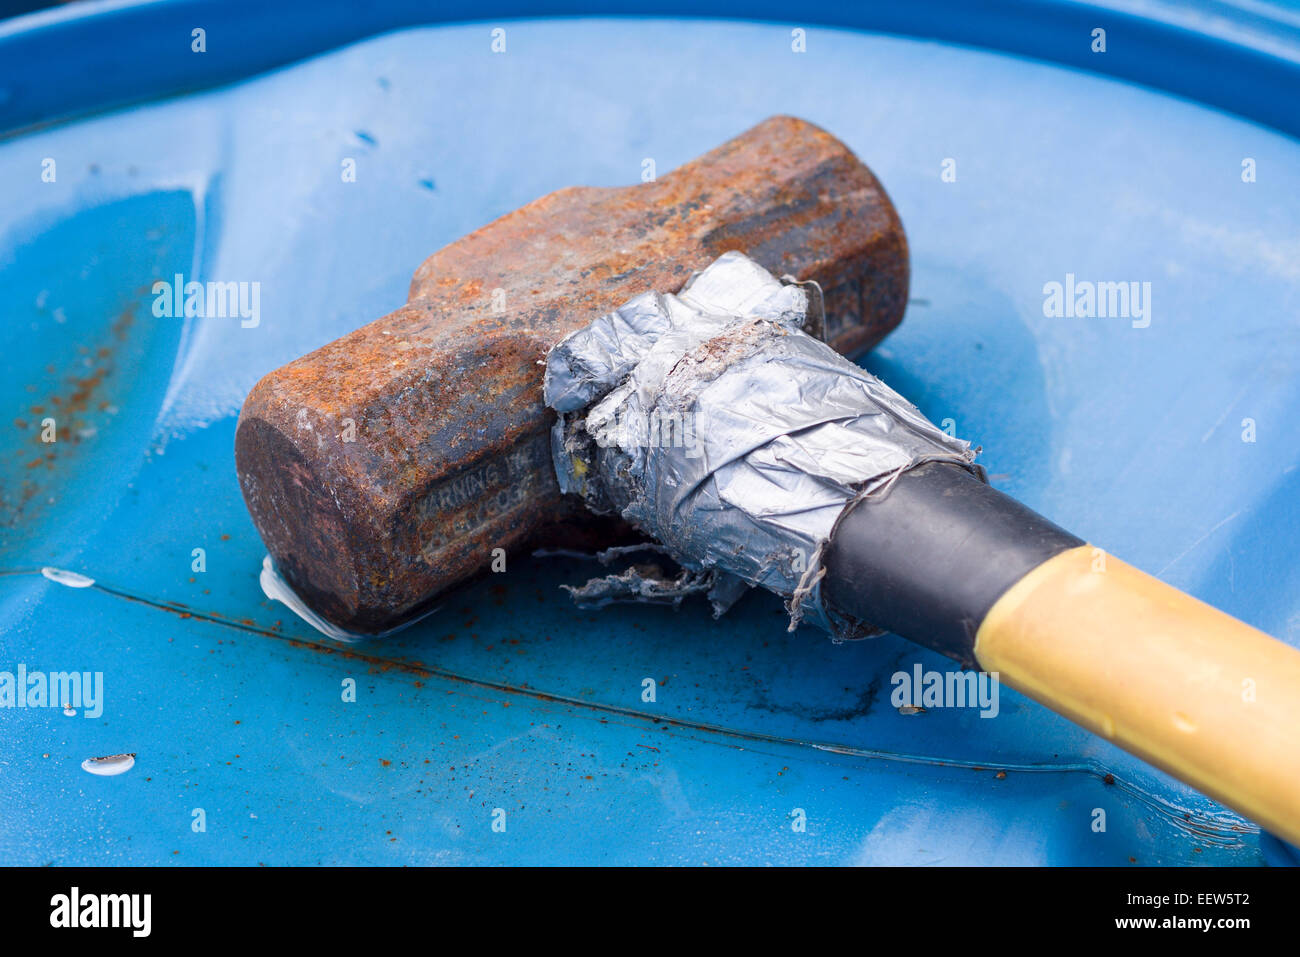 Rusty Sledge Hammer fixed with duct tape. A rusted sledge rests on a blue plastic barrel. Its handle repaired w - Stock Image